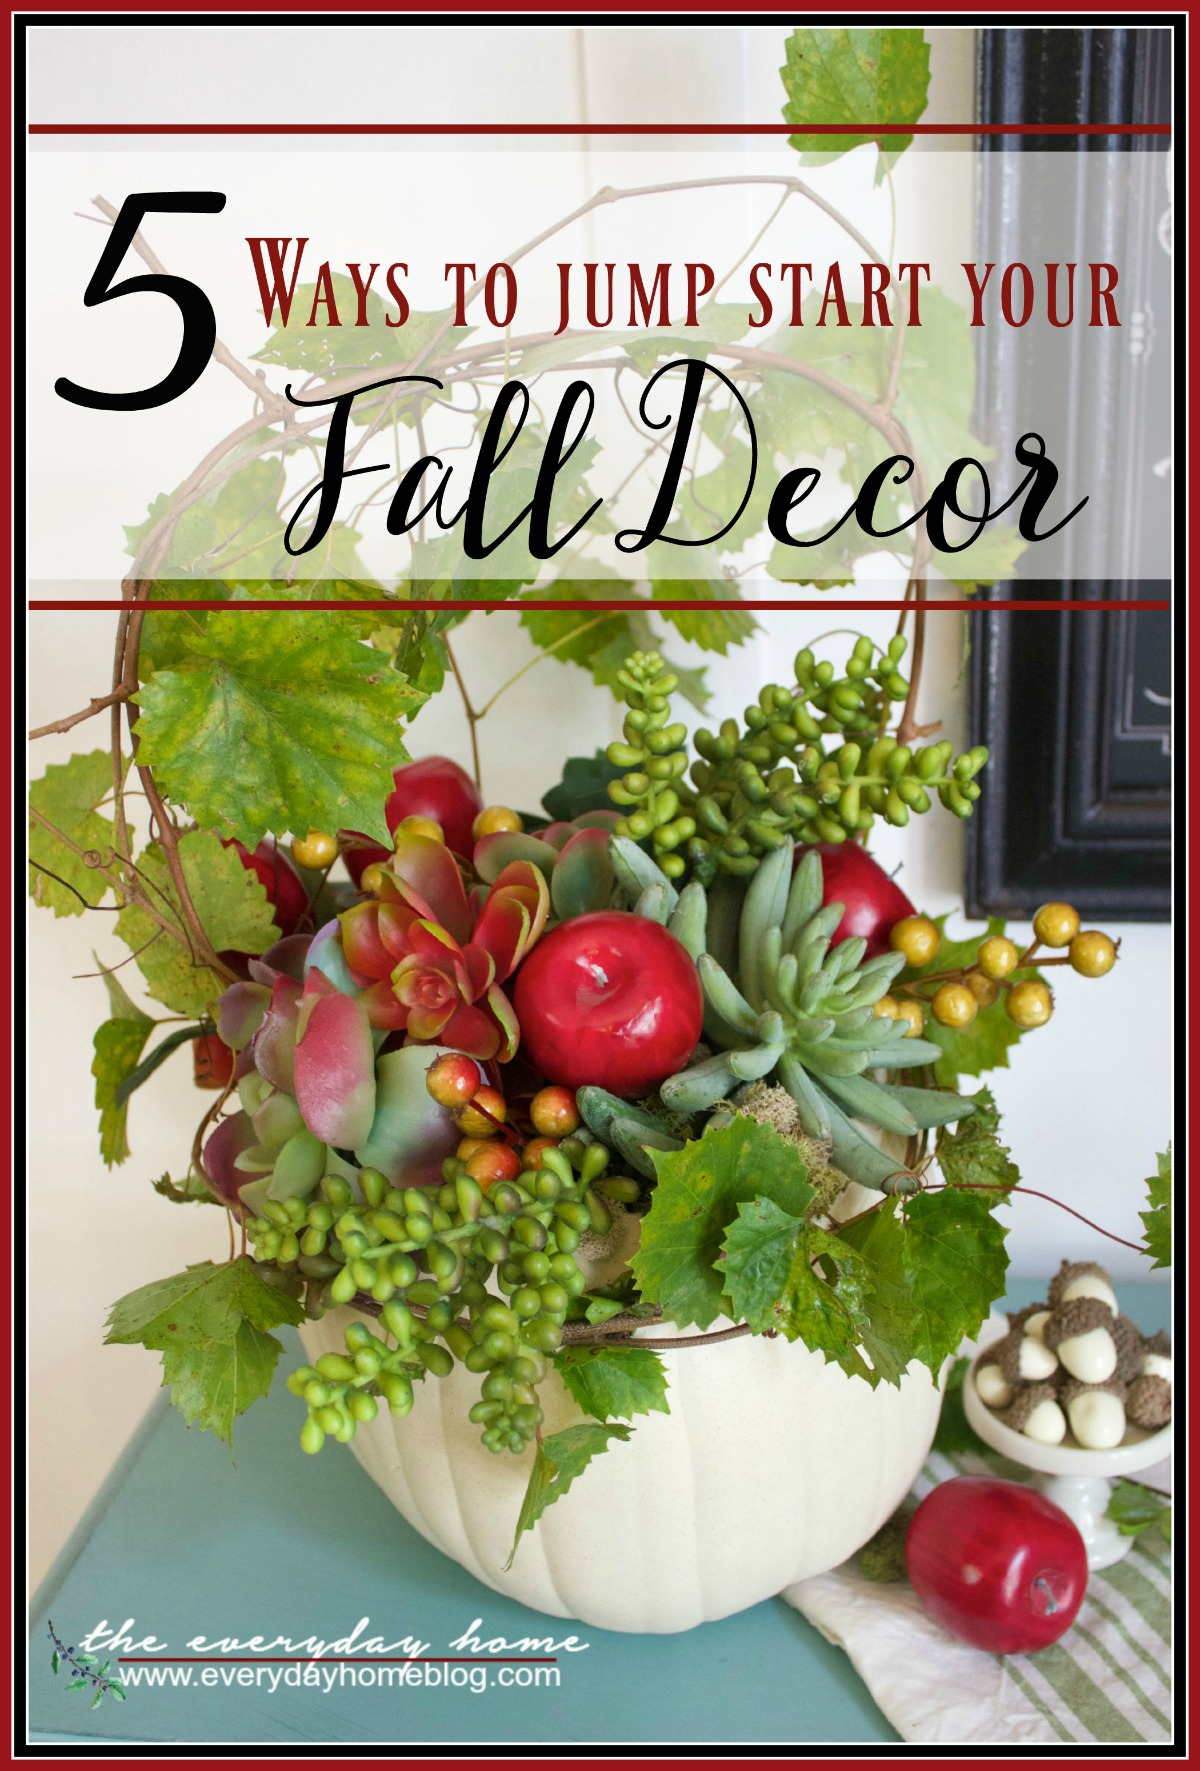 5 ways to jump start your fall decor the everyday home. Black Bedroom Furniture Sets. Home Design Ideas